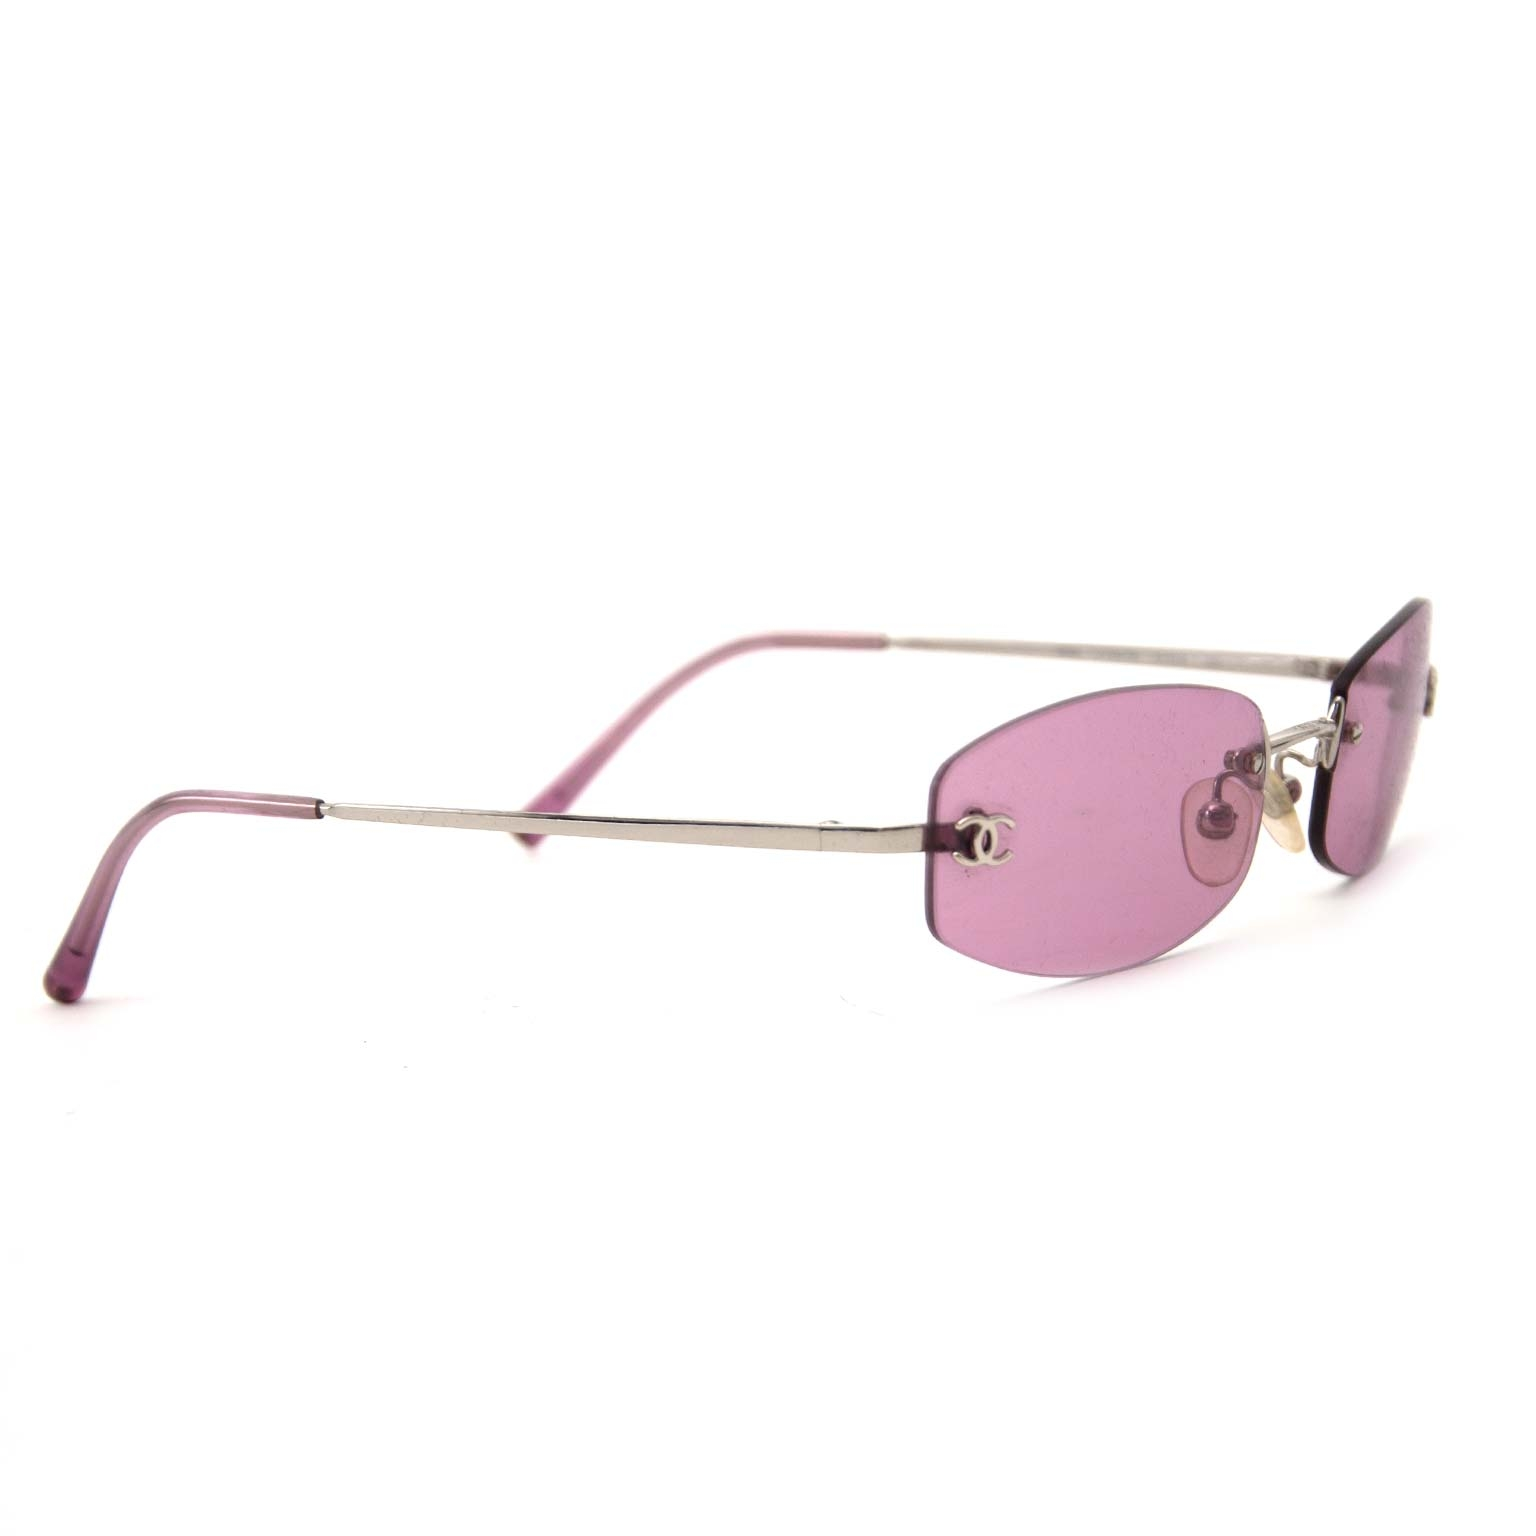 Buy secondhand authentic chanel pink sunglasses for less at Labellov, vintage webshop. Safe and secure shopping.